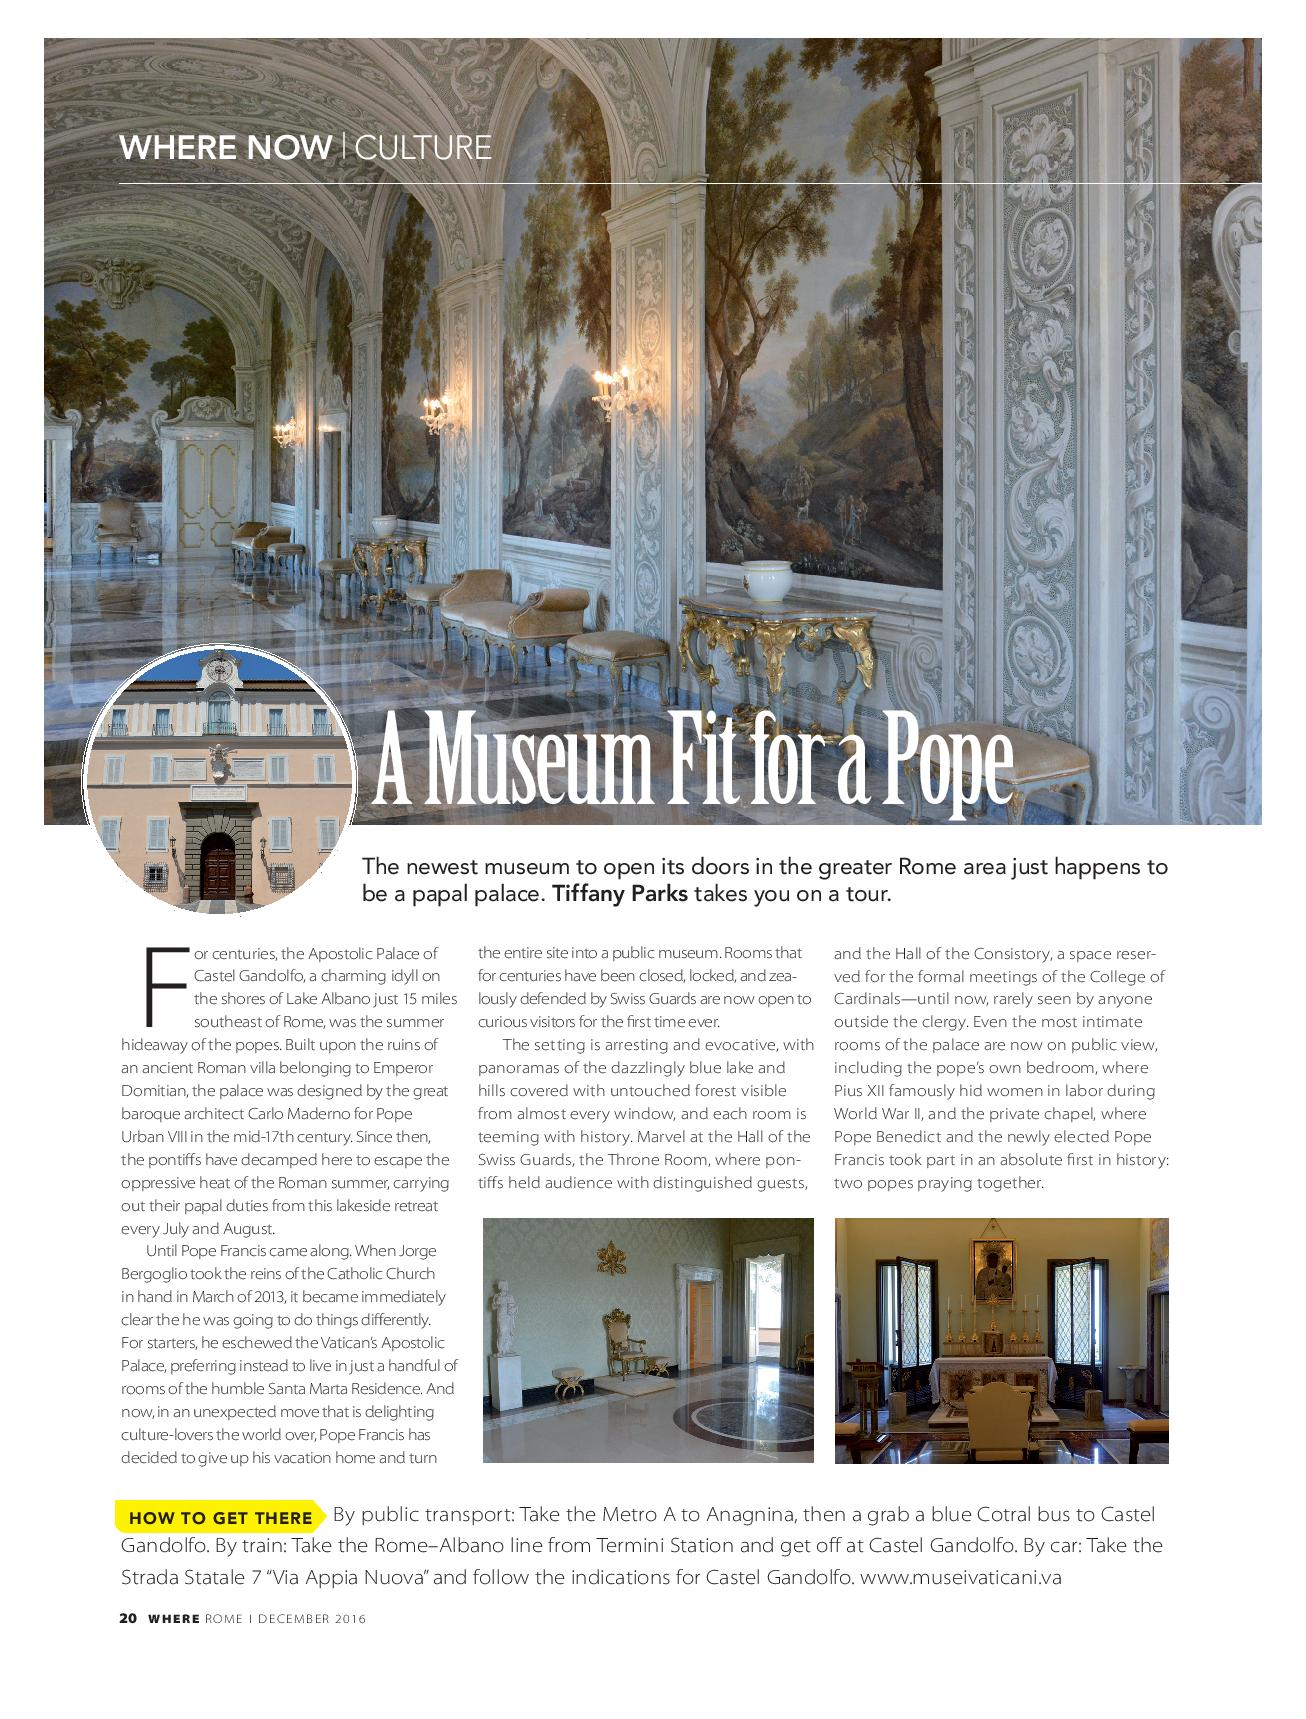 A Museum Fit for a Pope, Where Rome, December 2016-page-001.jpg